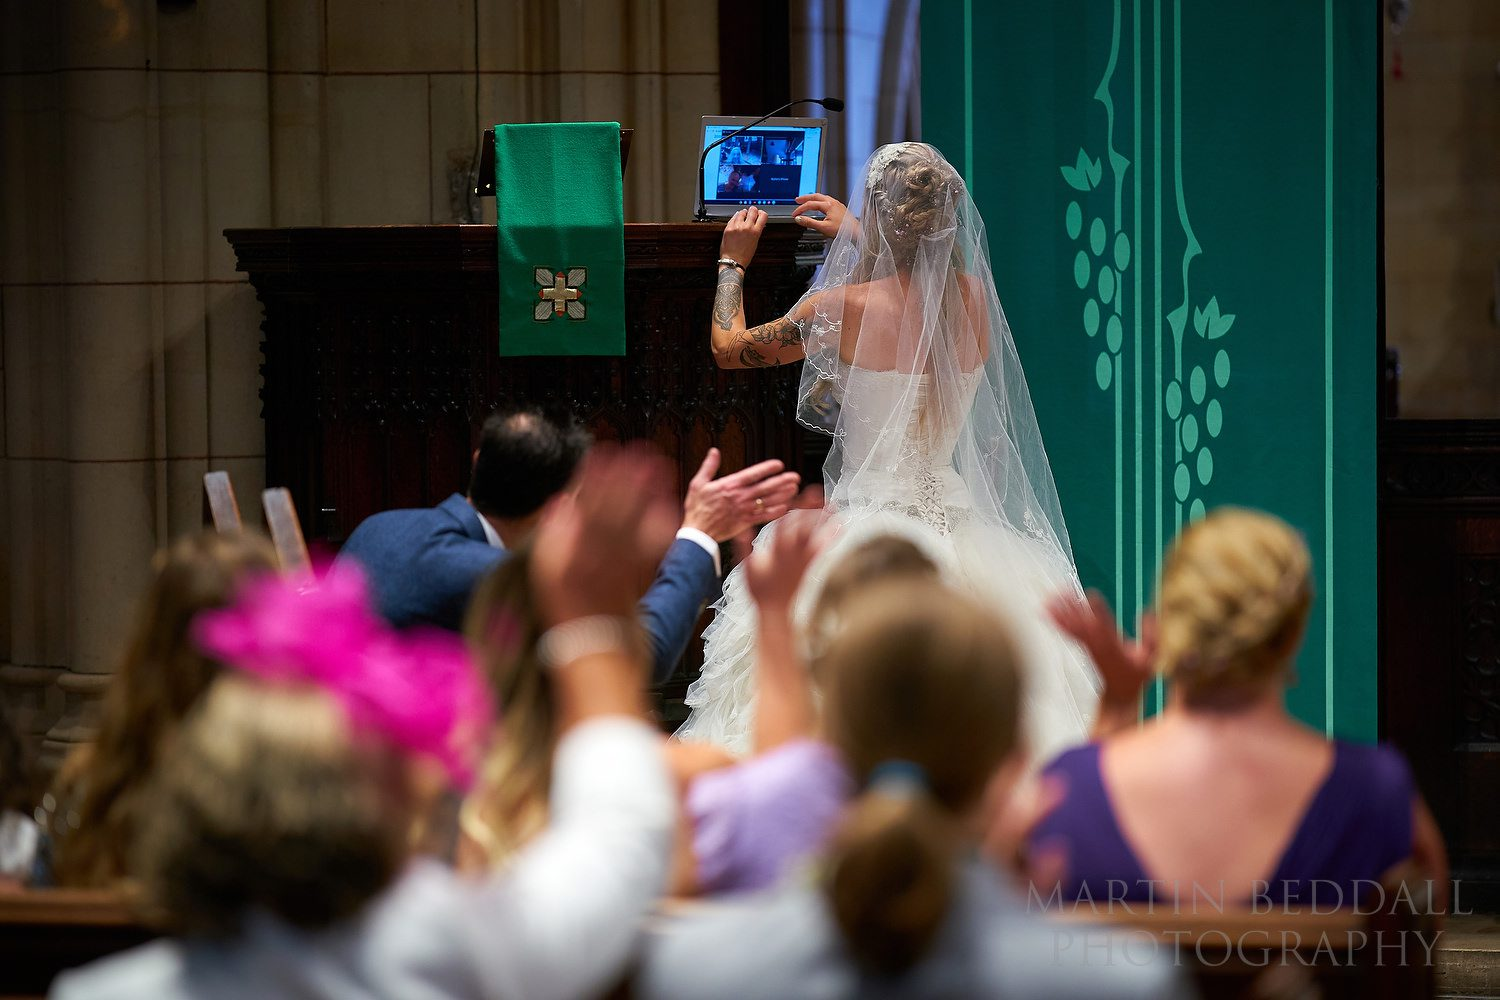 Setting up the laptop for Zoom at a post-lockdown wedding